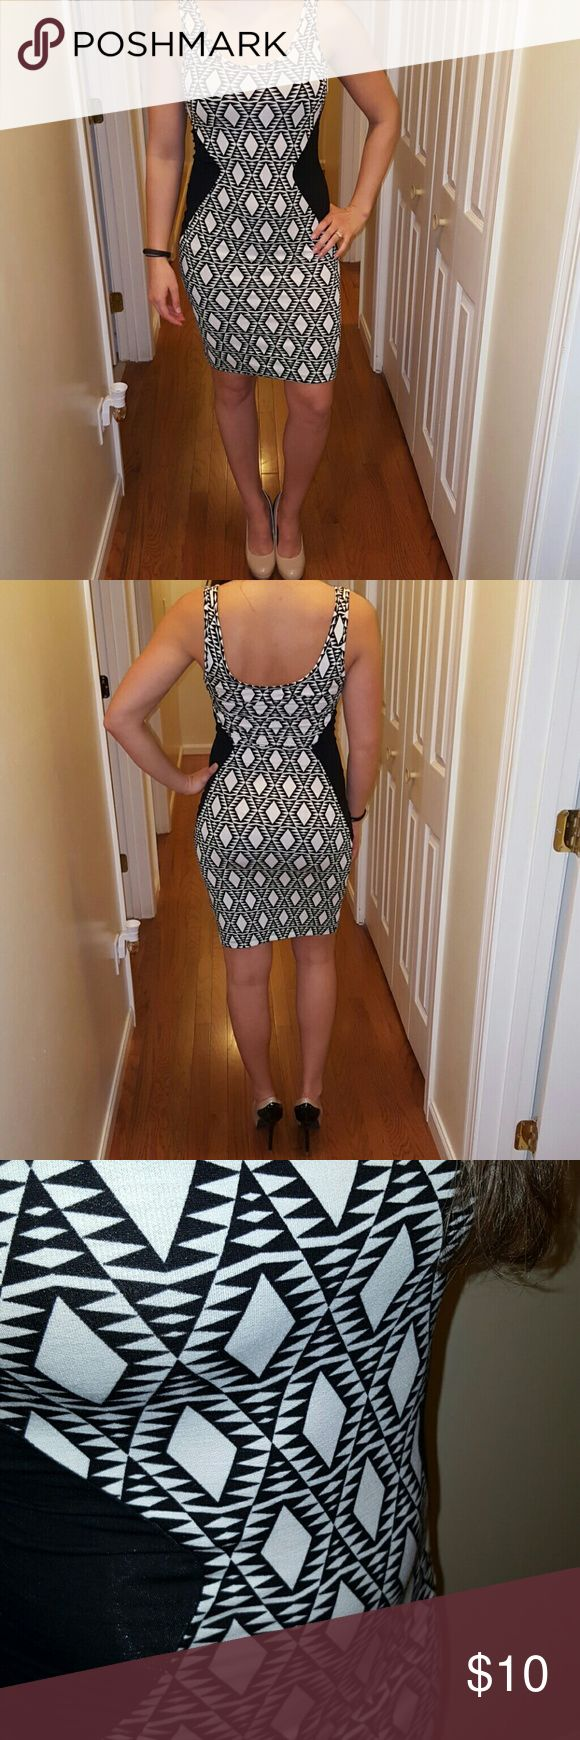 Cute, comfy going out dress! Never worn! Tags still attached. Bought at Apricot lane Boutique. Very flattering for an athletic type body! Dresses Midi